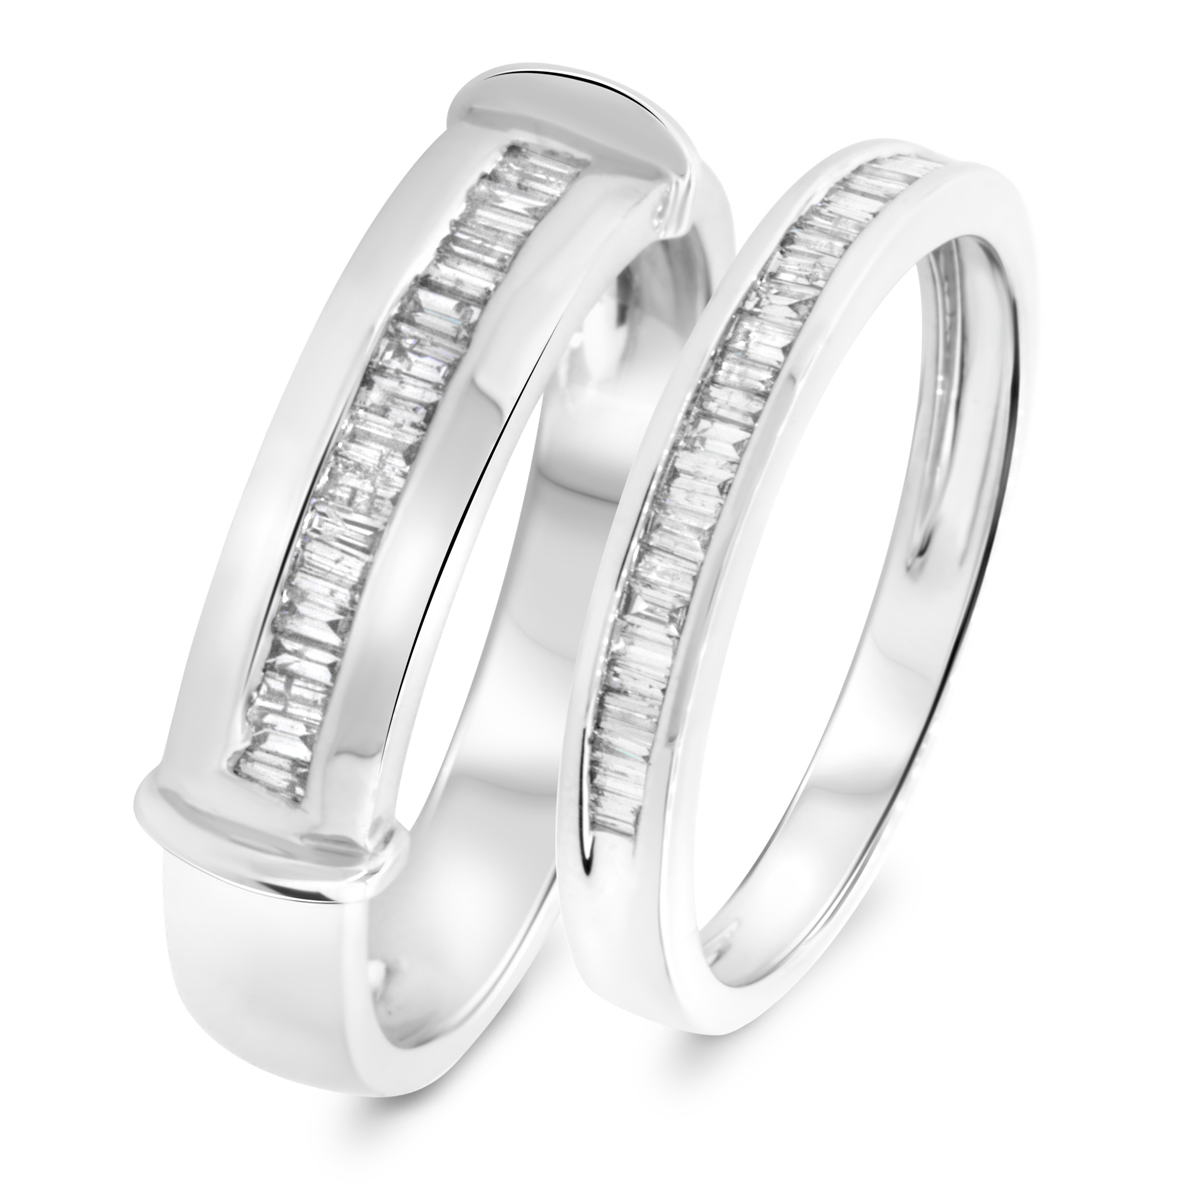 1/2 Carat T.W. Baguette Cut Diamond His and Hers Wedding Band Set 14K White Gold